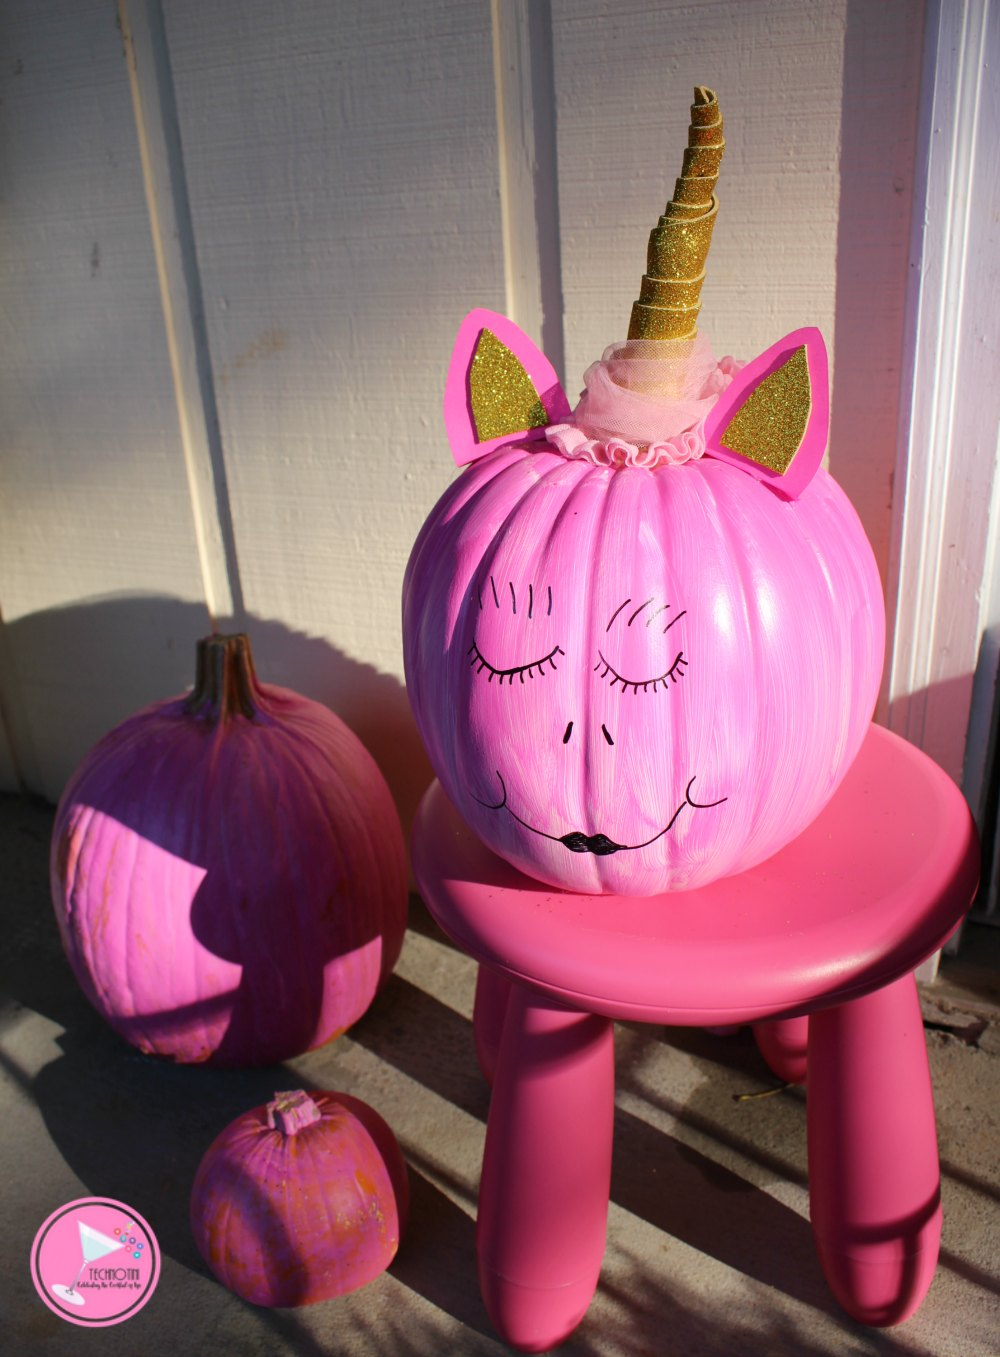 This super fun Unicorn Pumpkin craft is great for kids. It's also perfect if you're looking to combine Halloween and Breast Cancer Awareness décor! Check out my amazing trick using upcycled material for the mane. You'll never guess where it came from!